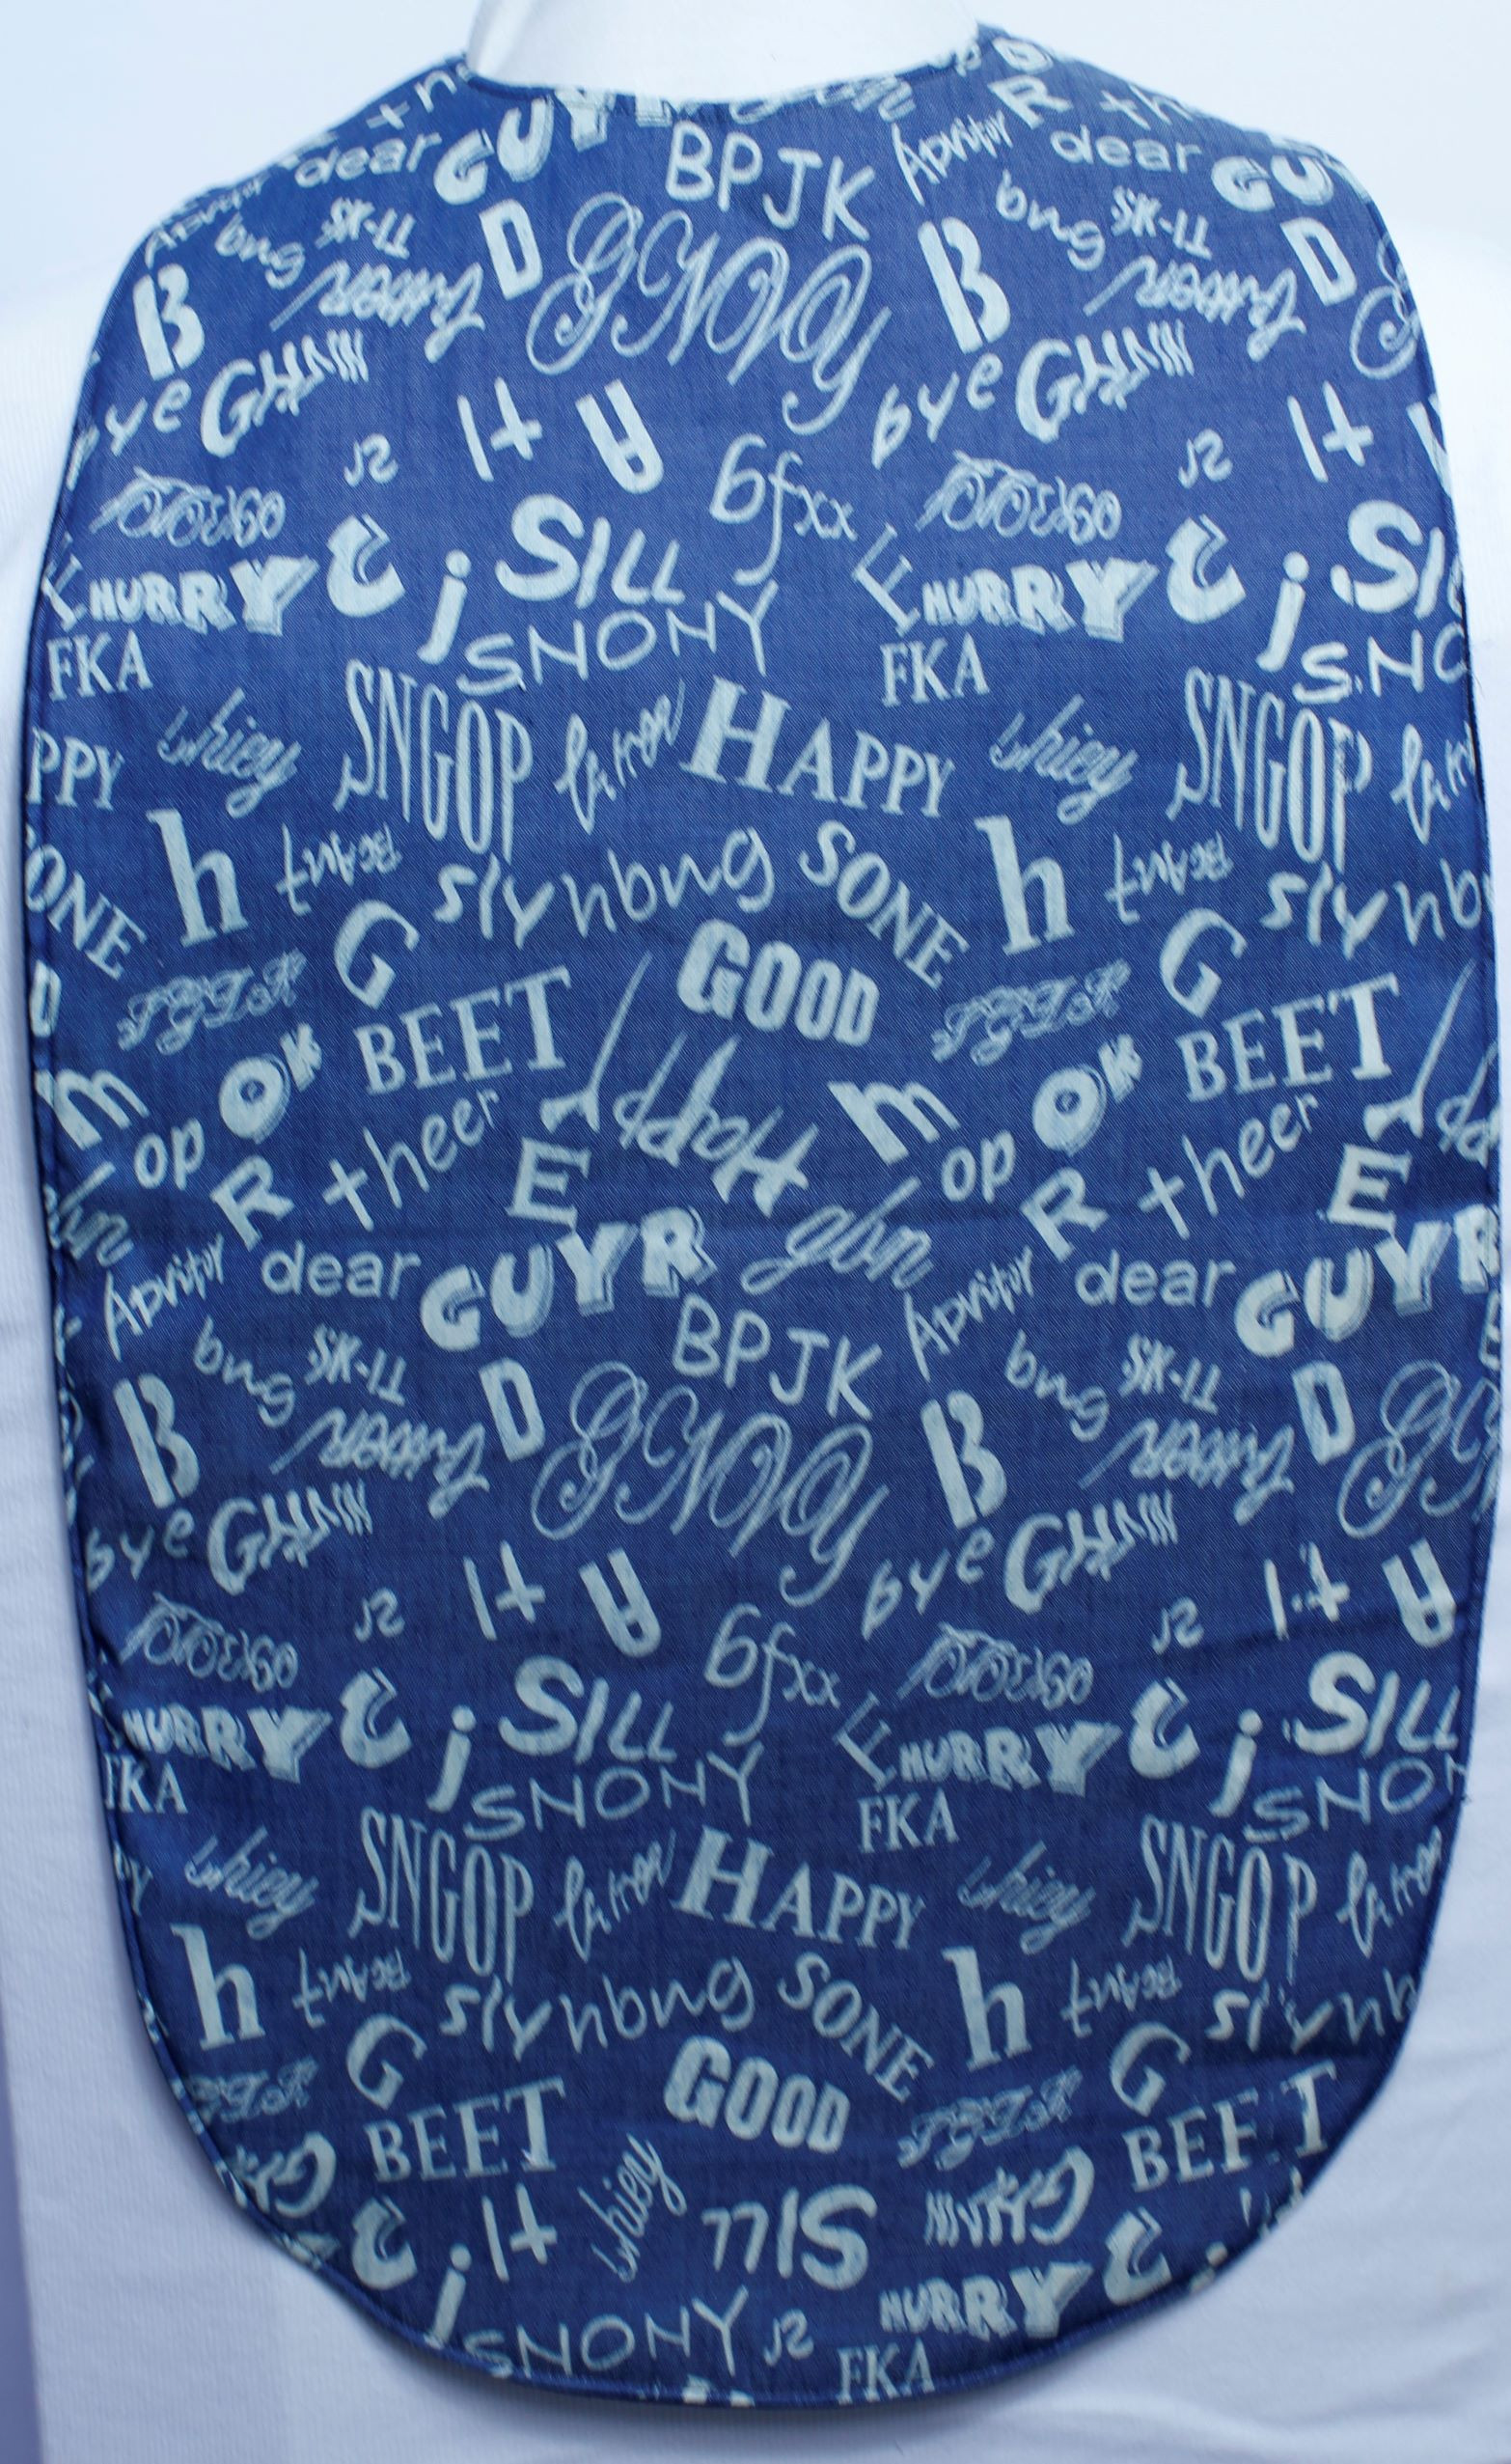 Wordy Denim - Extra Protect Long Length Clothing Protector